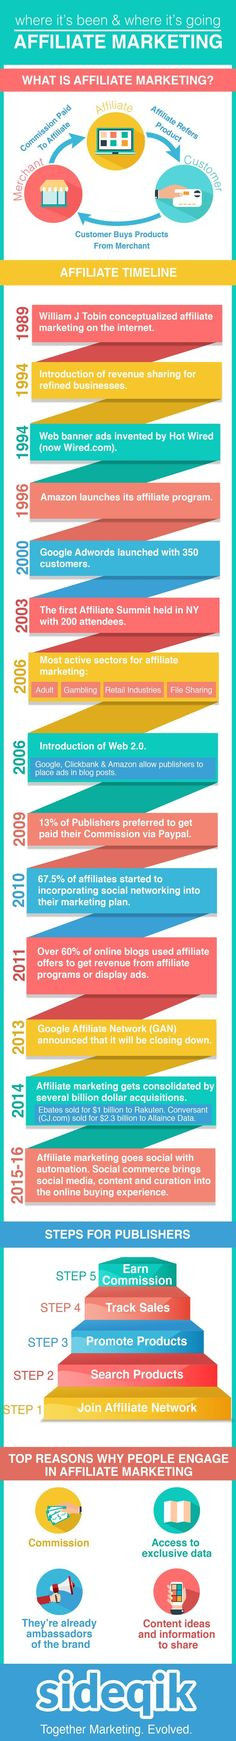 Affiliate #marketing where it's been and where it's going (Infographic) #officesecuritytips